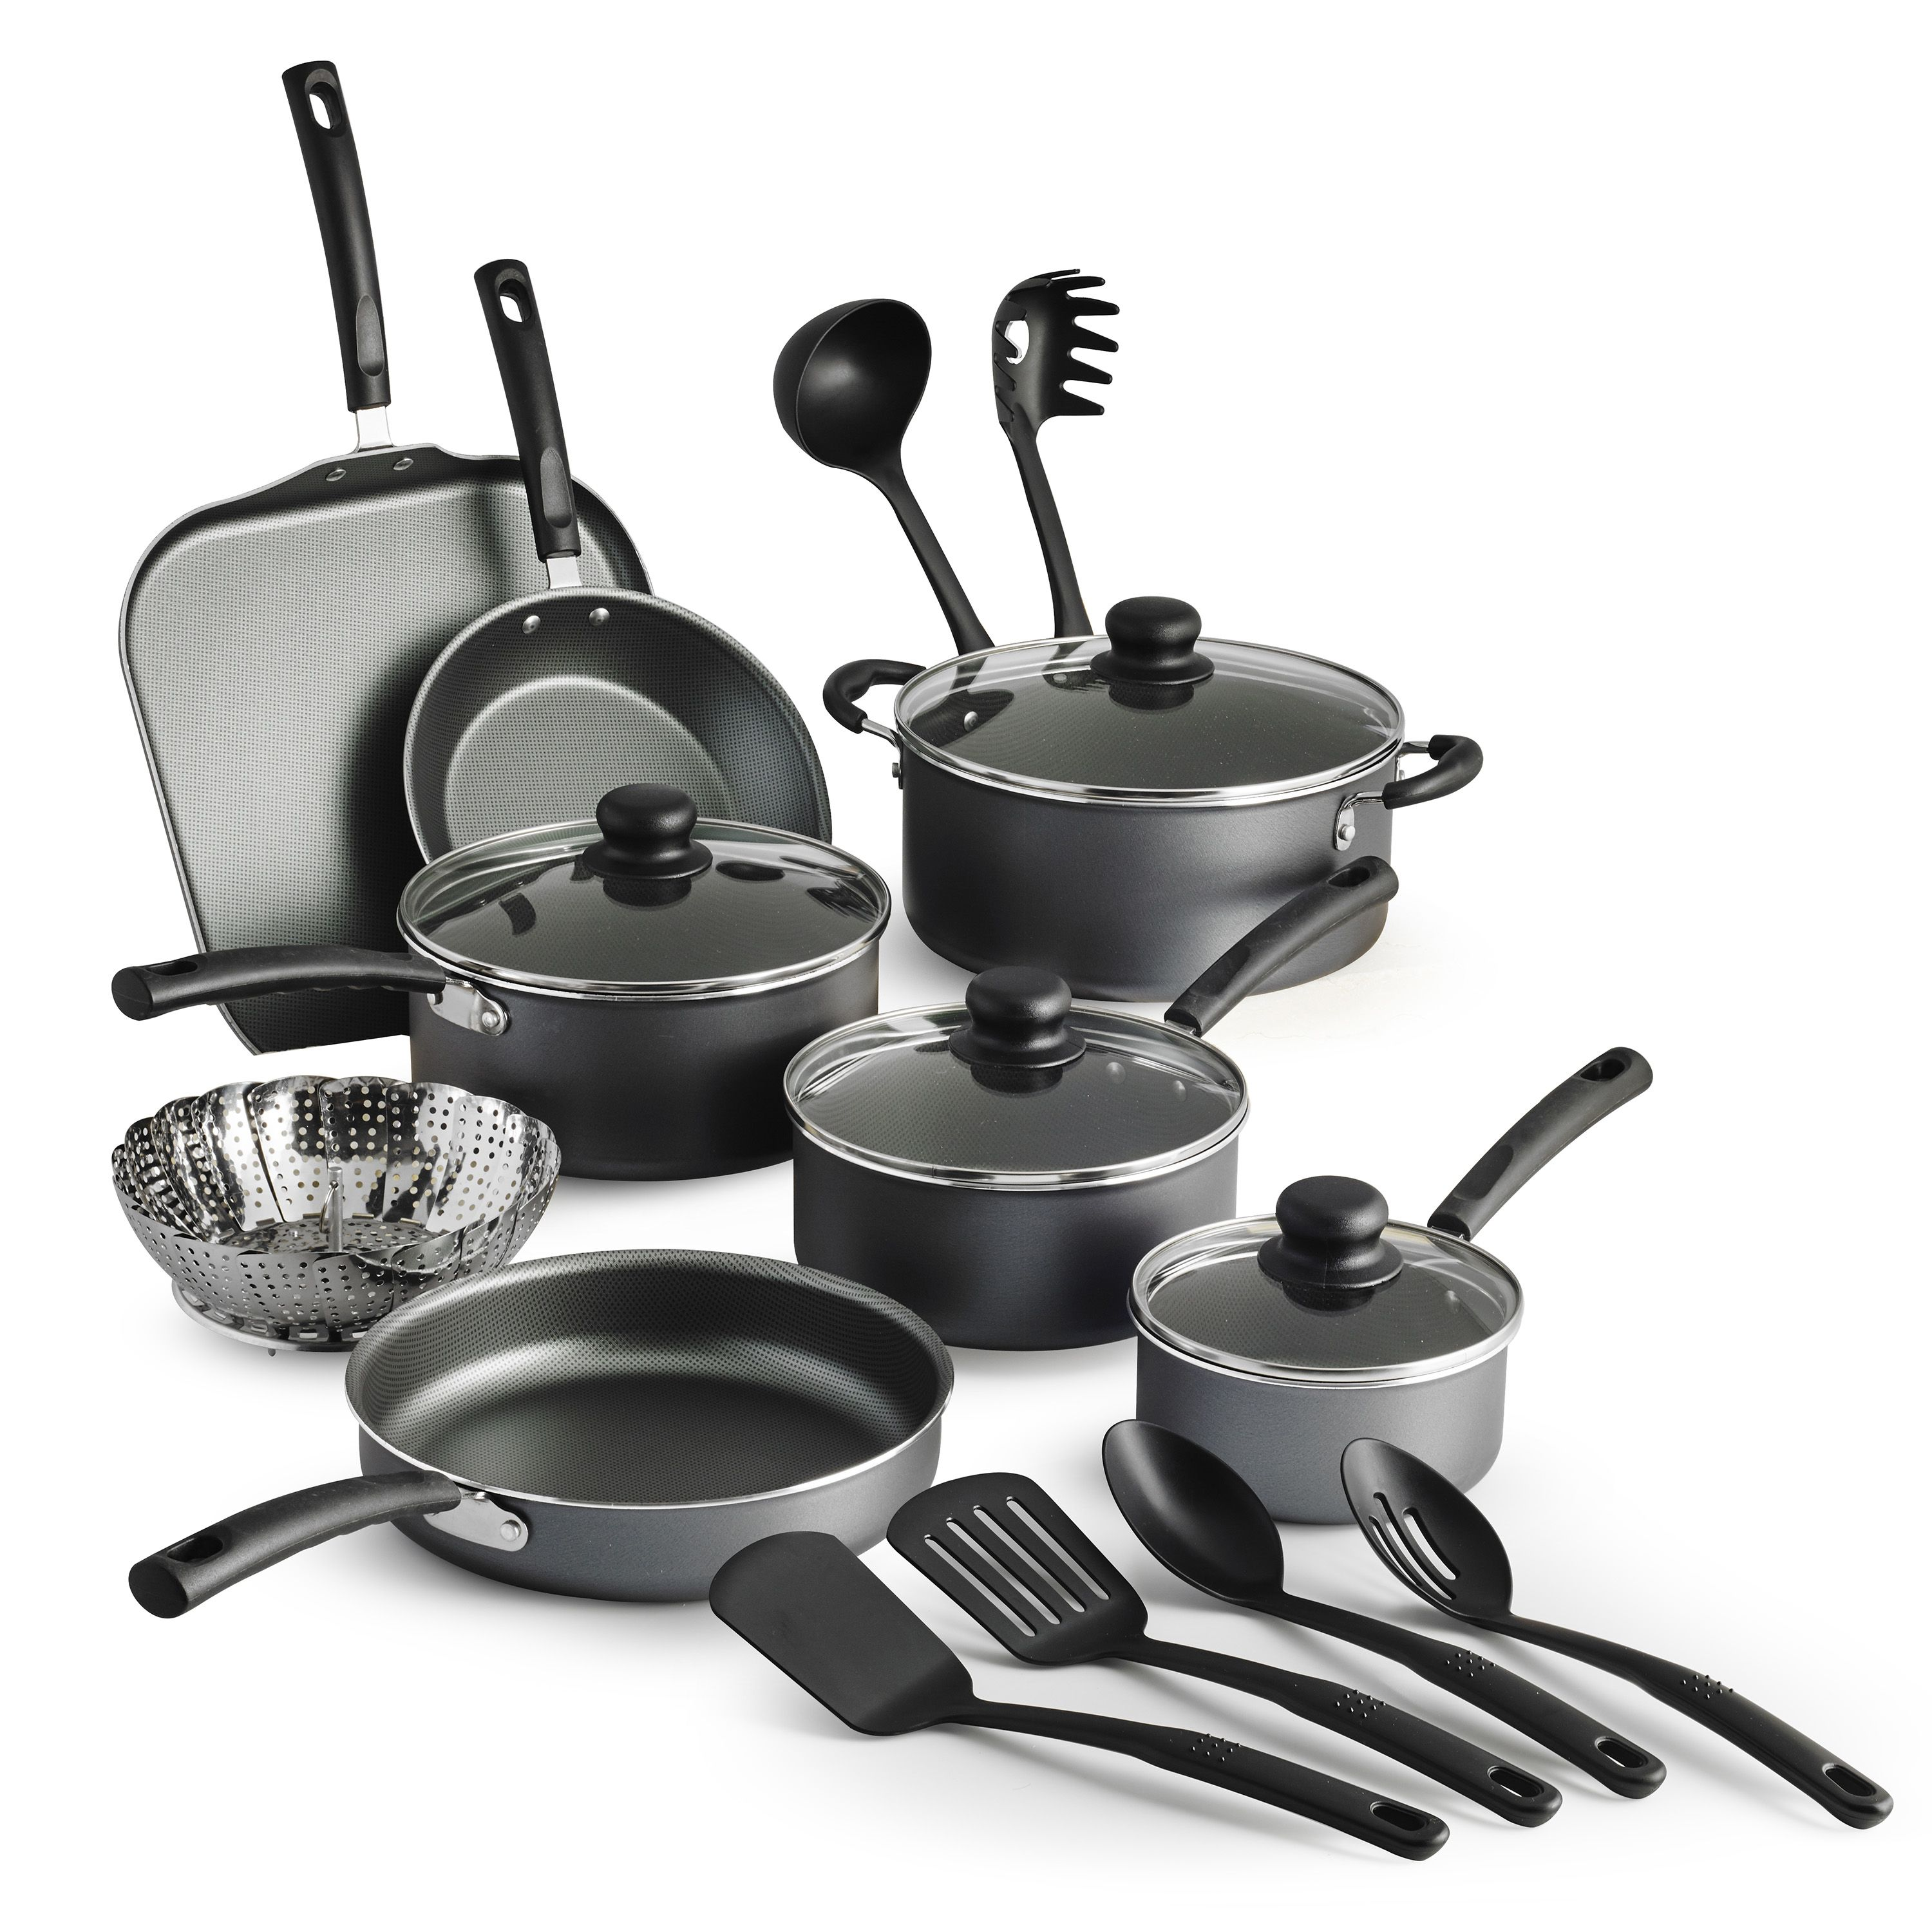 Tramontina Primaware Non Stick Cookware Set 18 Piece Walmart Com Ceramic Cookware Set Cookware Set Nonstick Cookware Set Stainless Steel